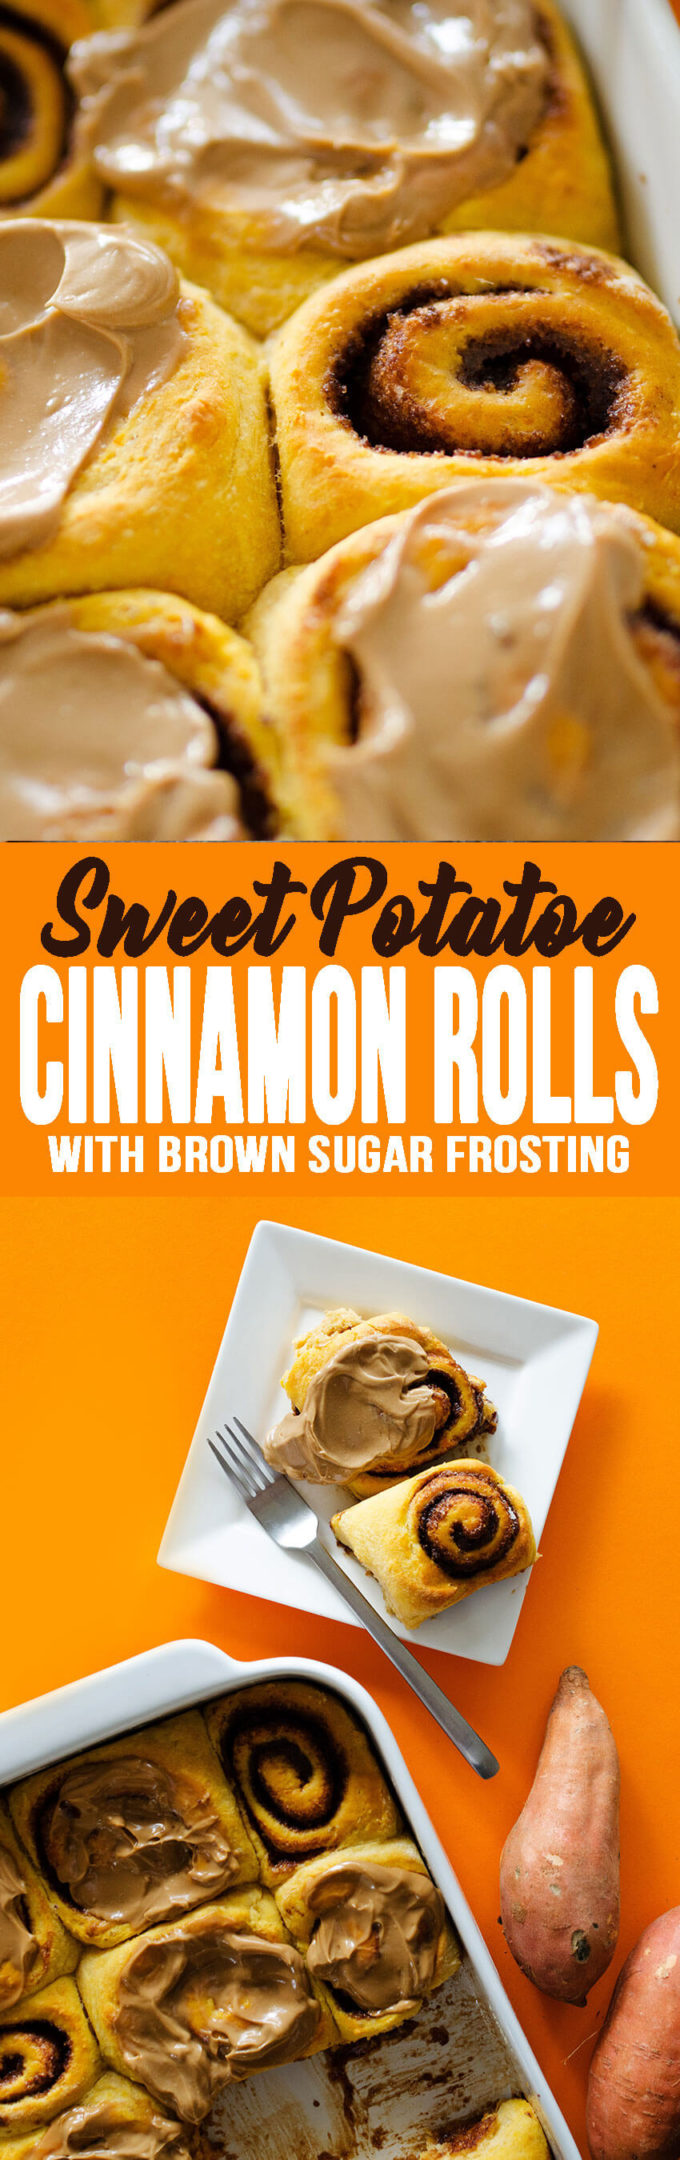 Sweet potato cinnamon rolls with a brown sugar frosting